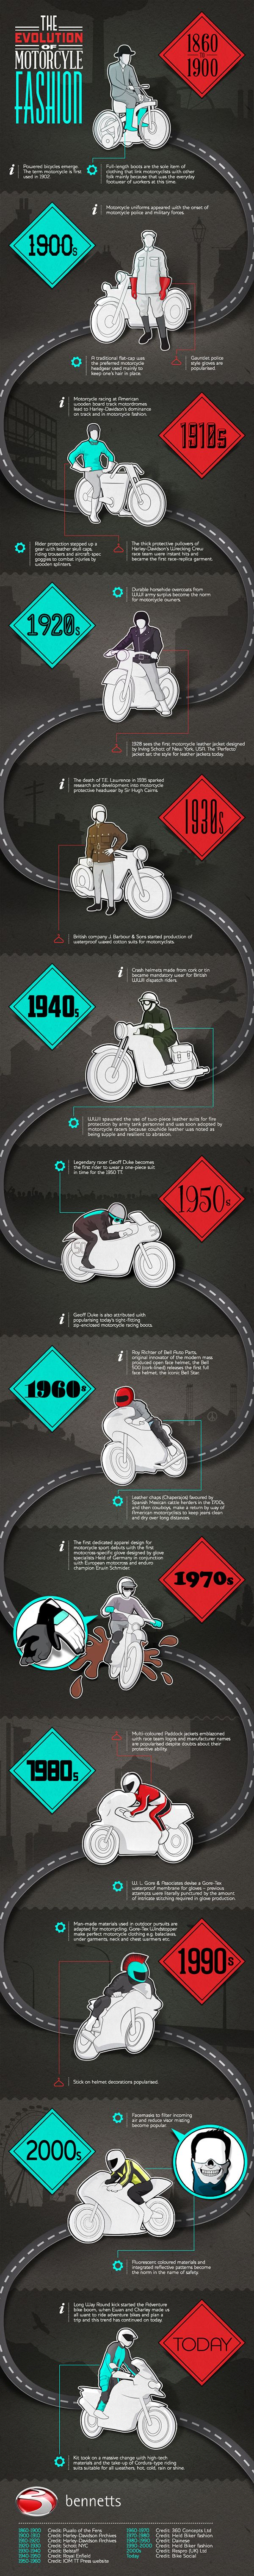 The Evolution of Motorcycle Fashion